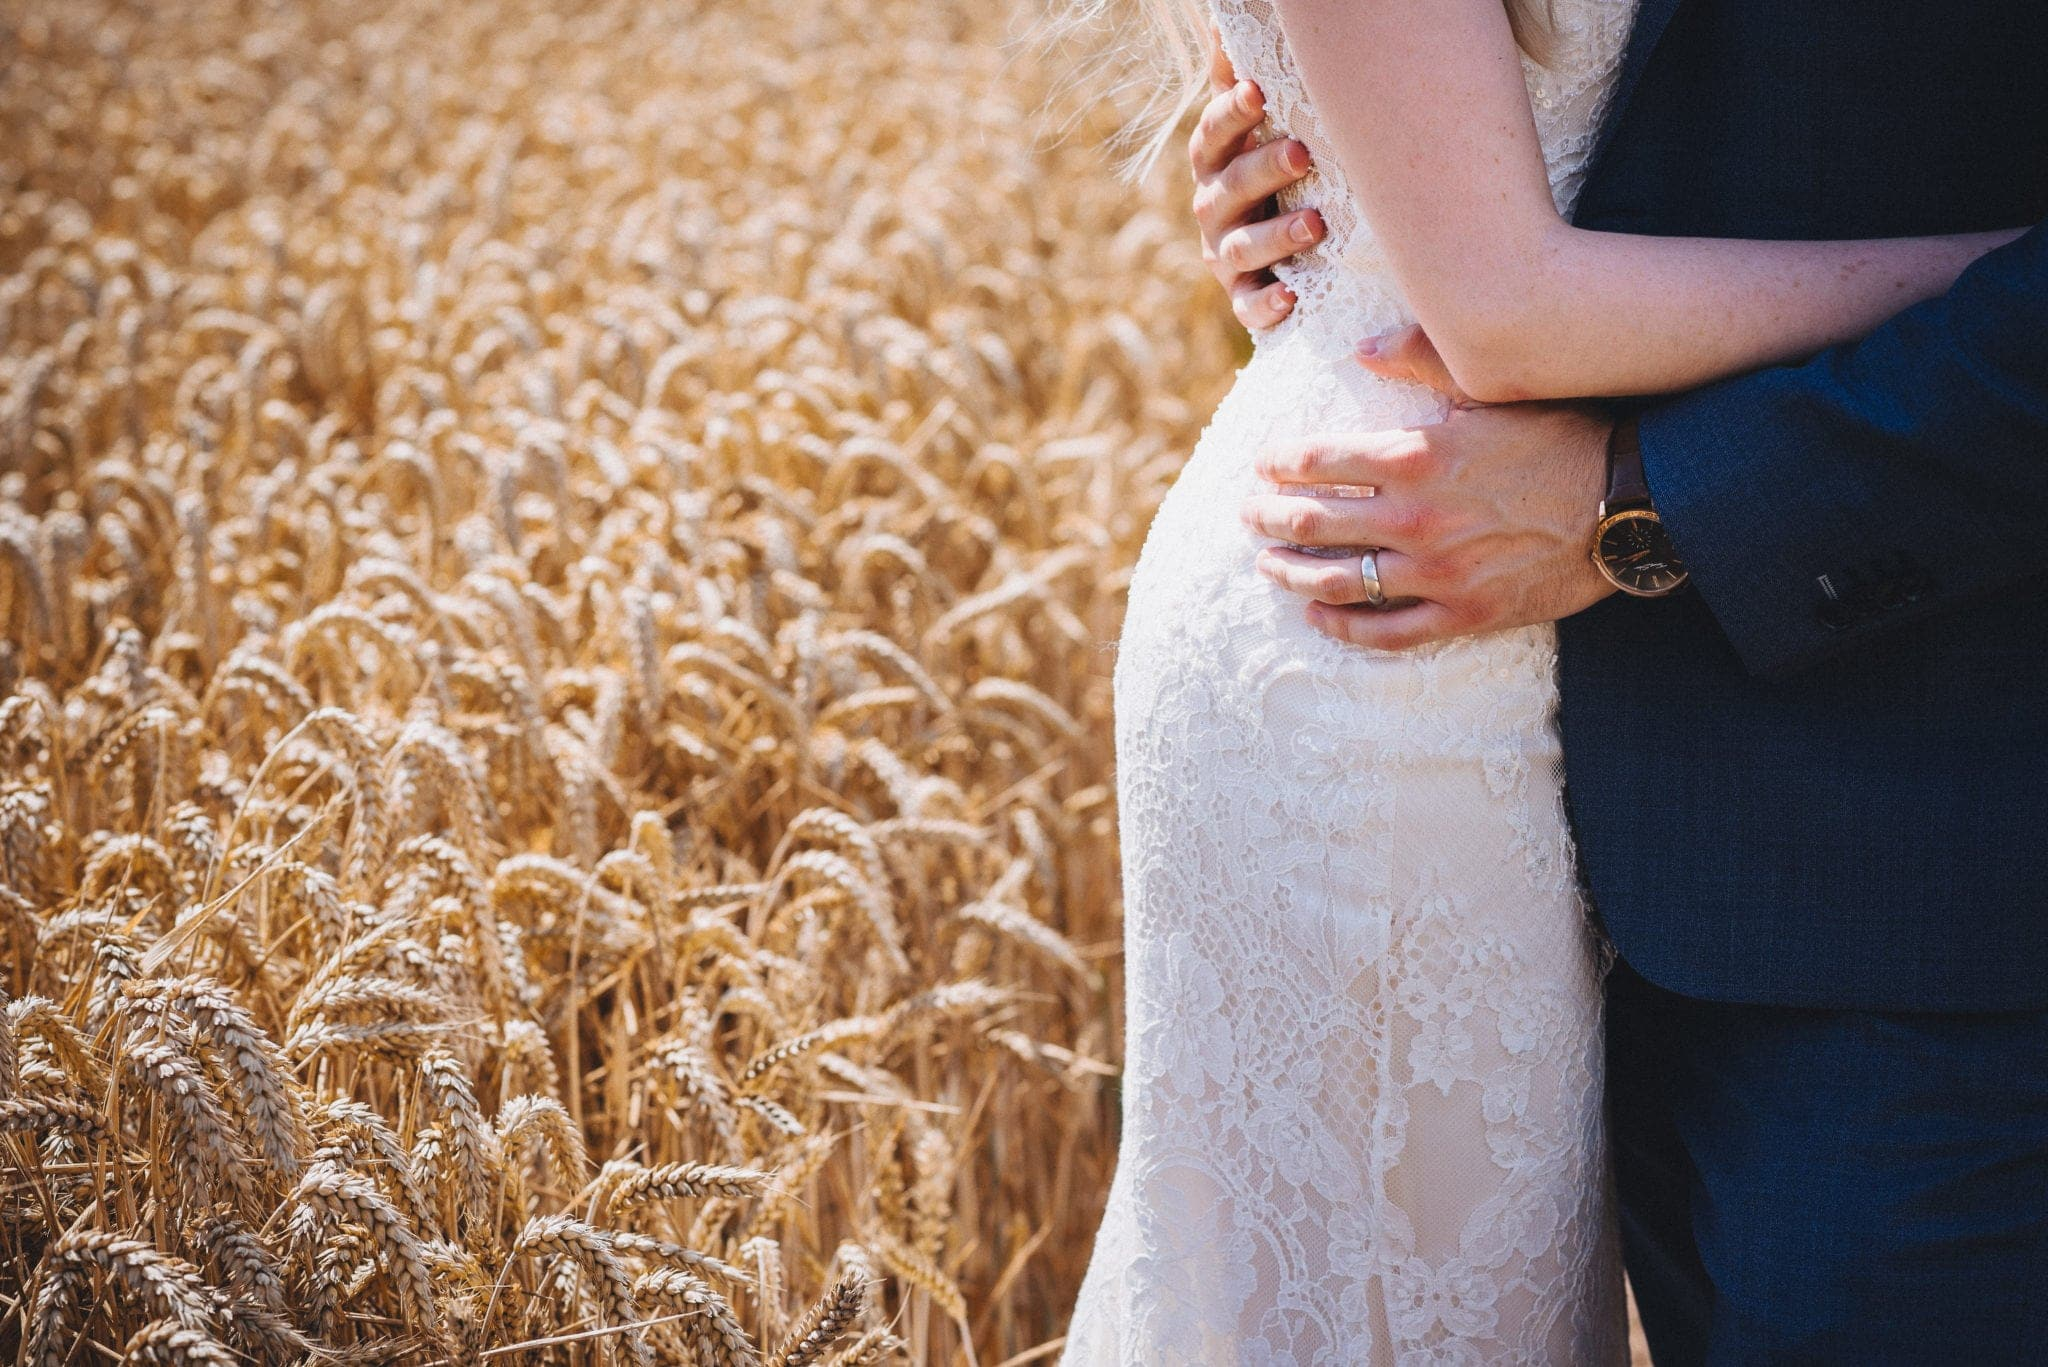 Bride and groom with their arms around each other's waists standing in a summer corn field